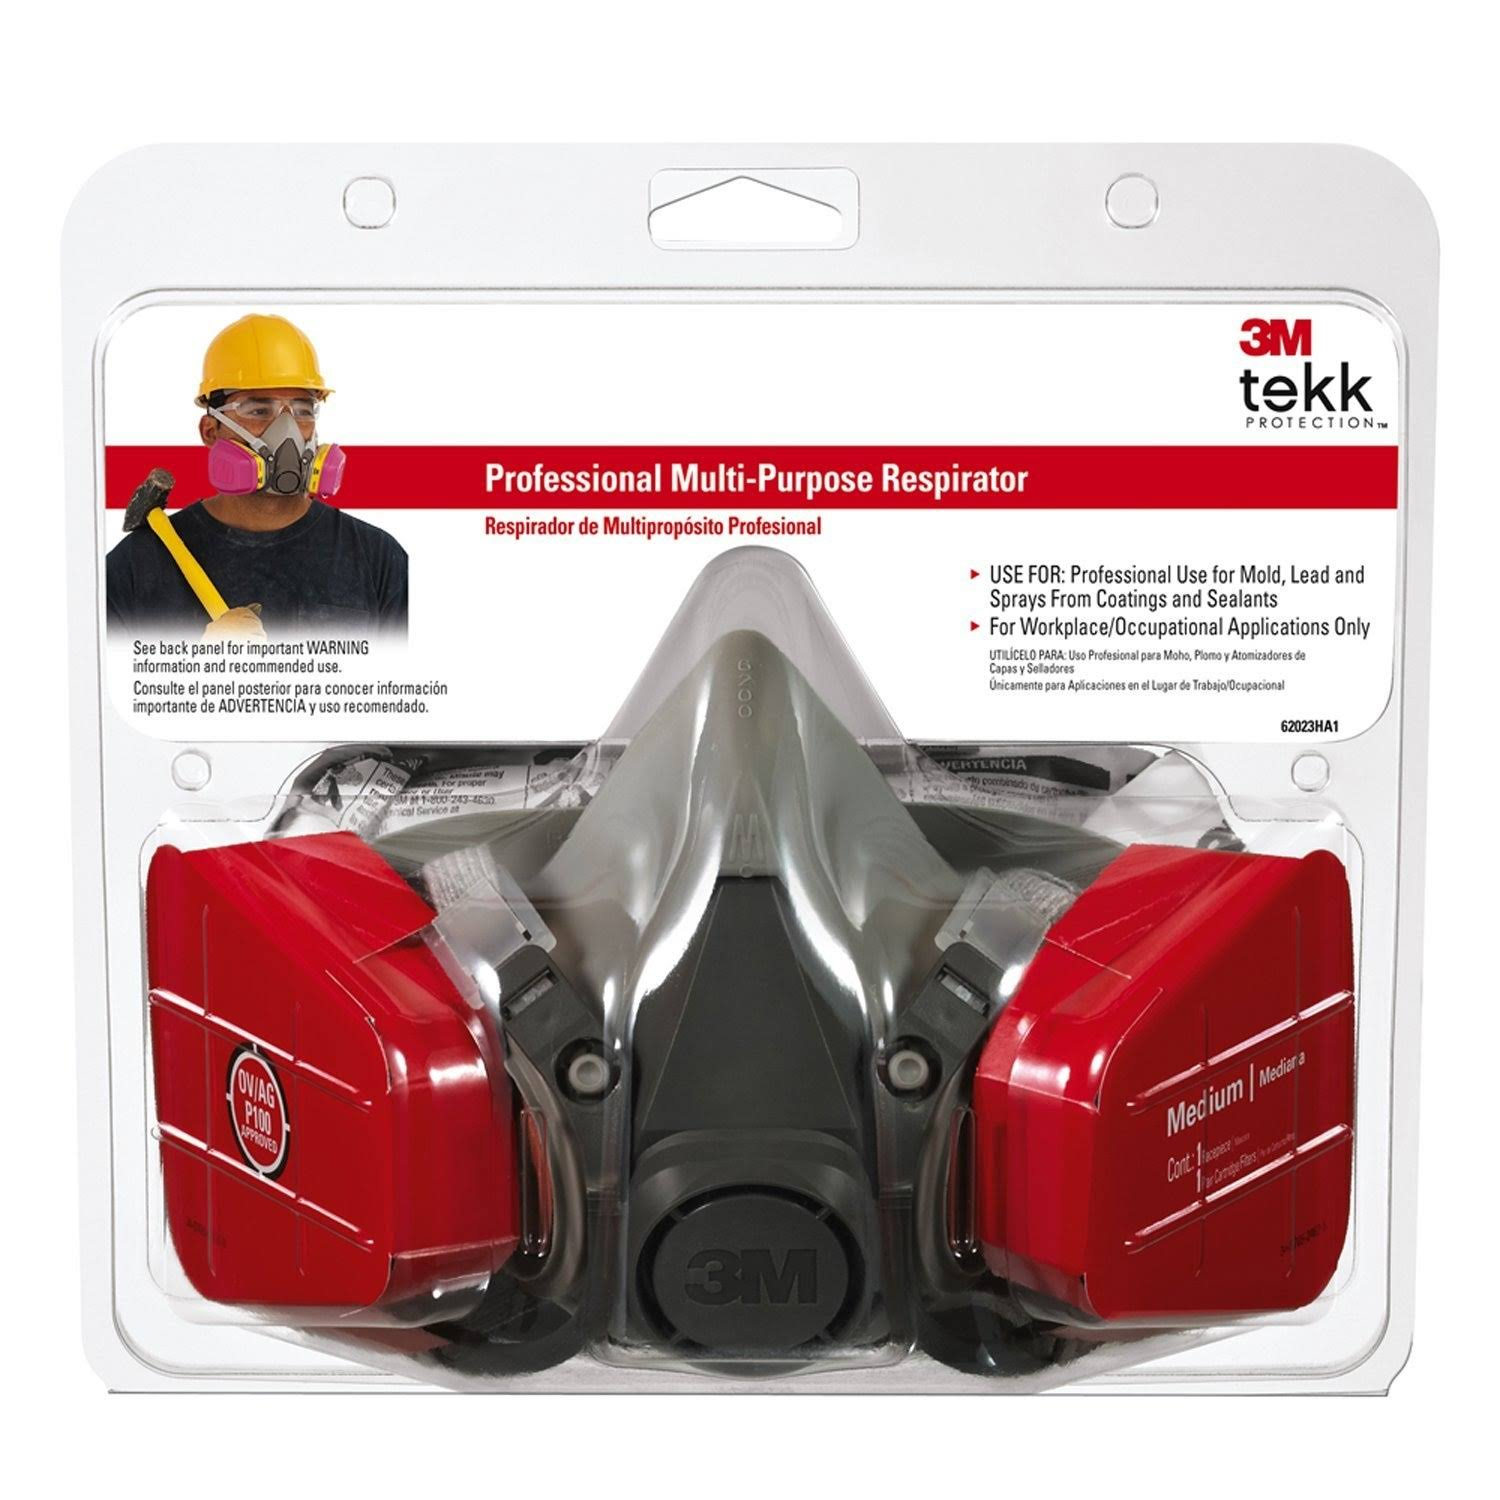 3M Tekk Professional Multi-Purpose Respirator